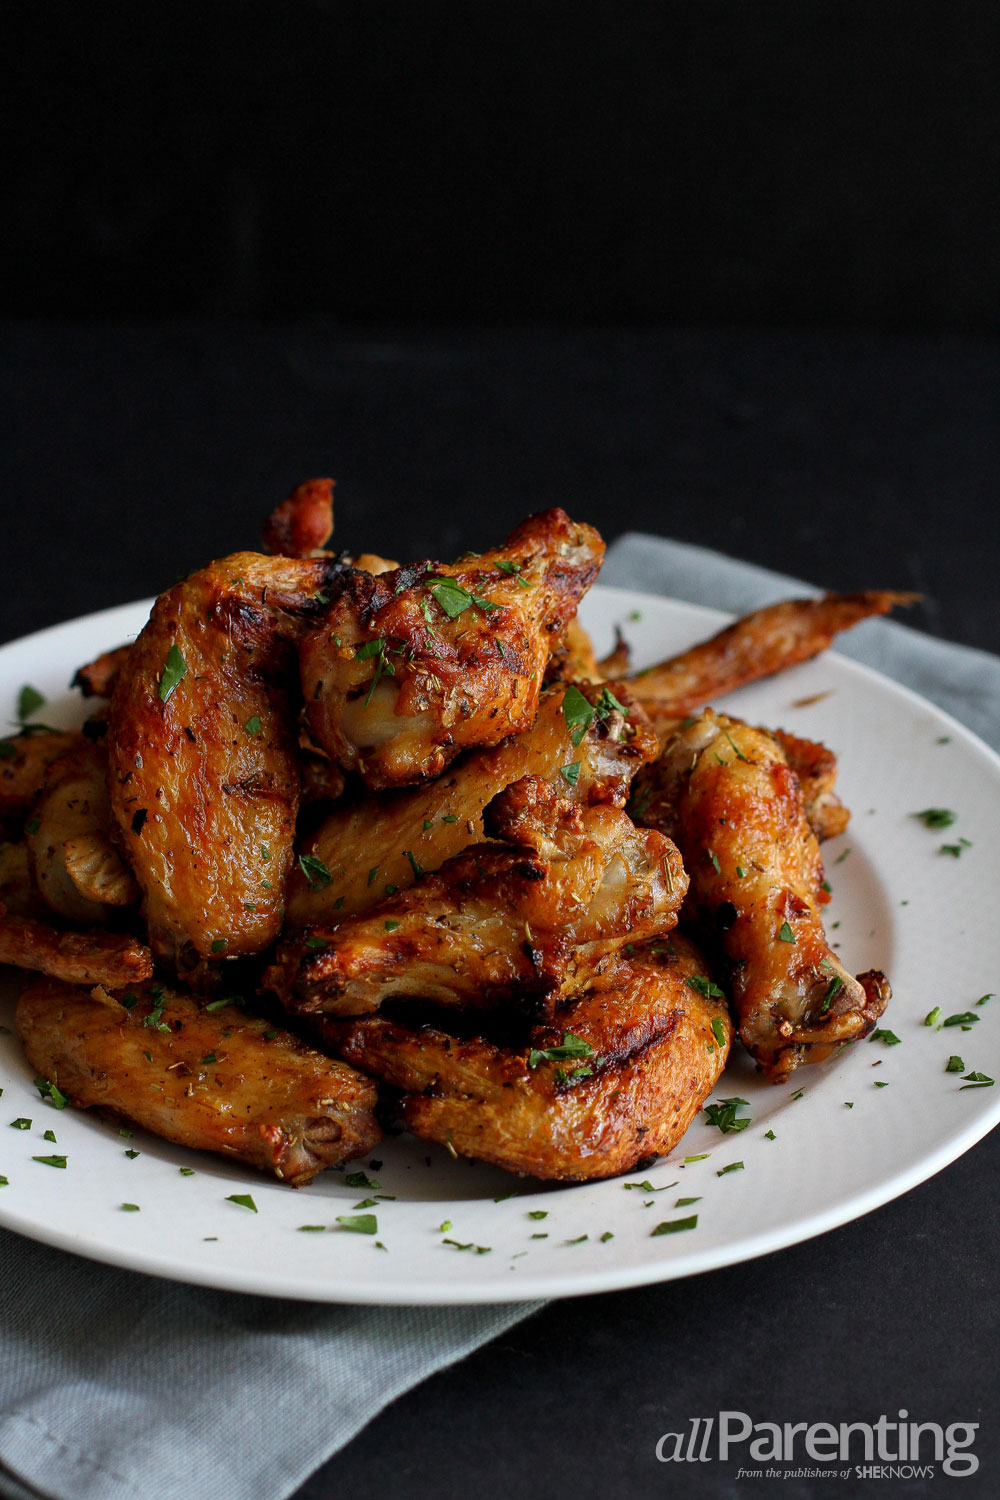 allParenting Grilled chicken wings